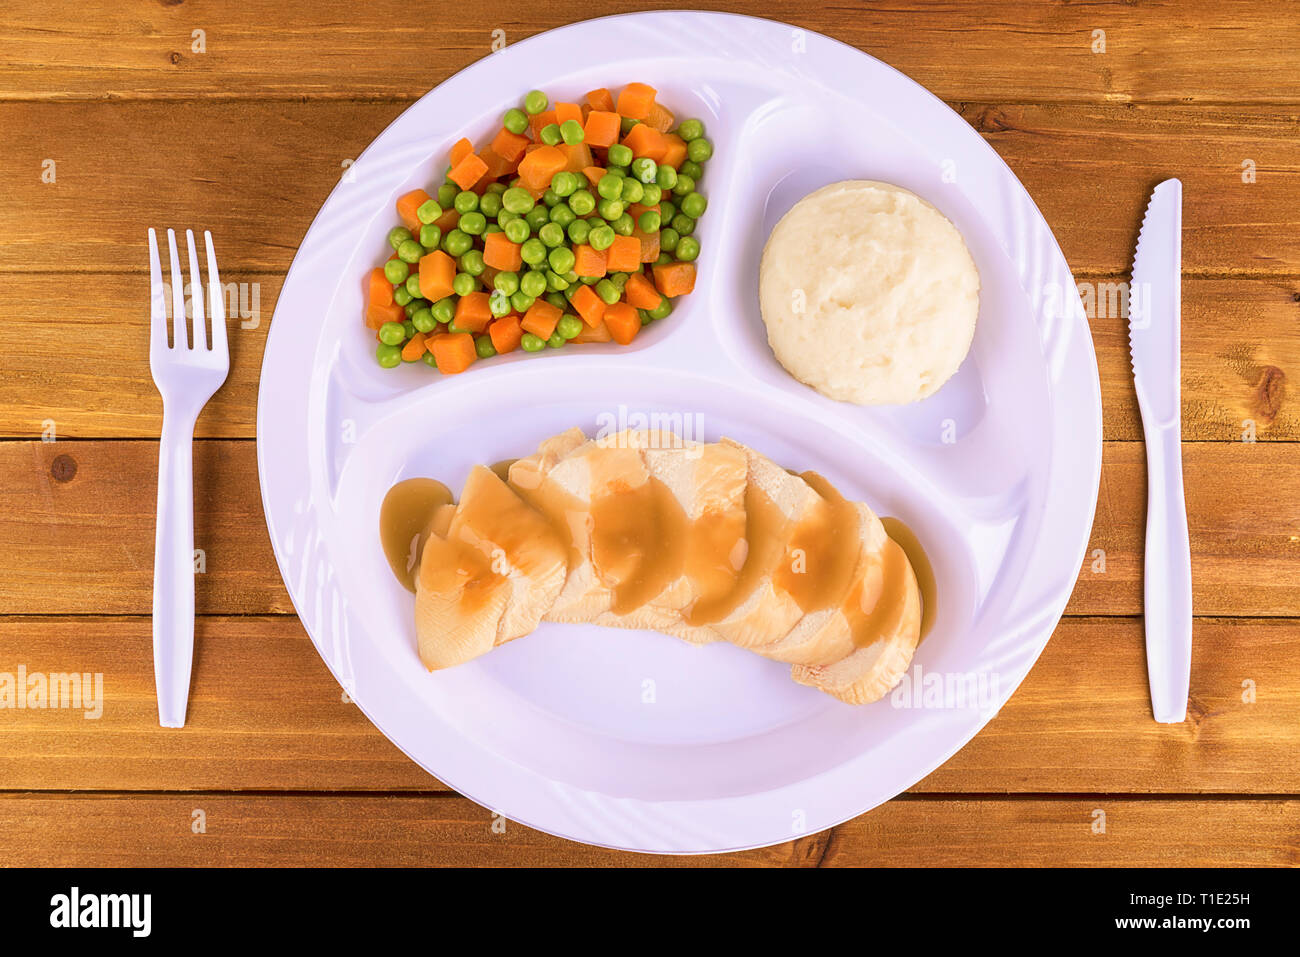 Sliced chicken tv dinner on wooden background, top view. - Stock Image